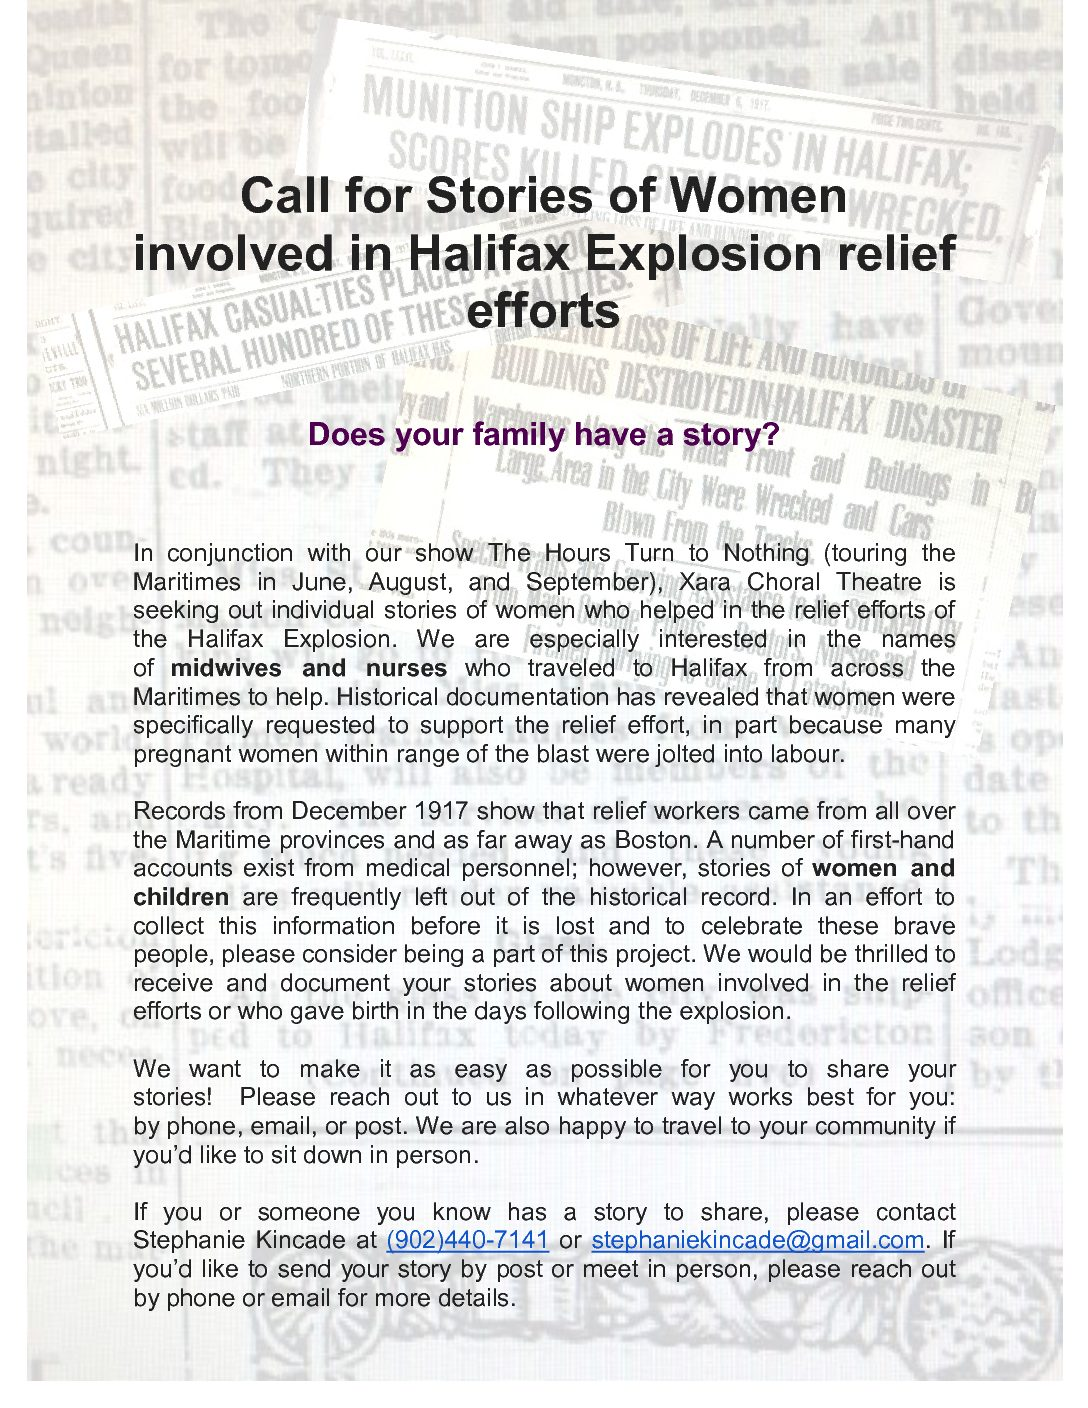 Thumbnail for the post titled: Call for Stories of Women involved in Halifax Explosion relief efforts